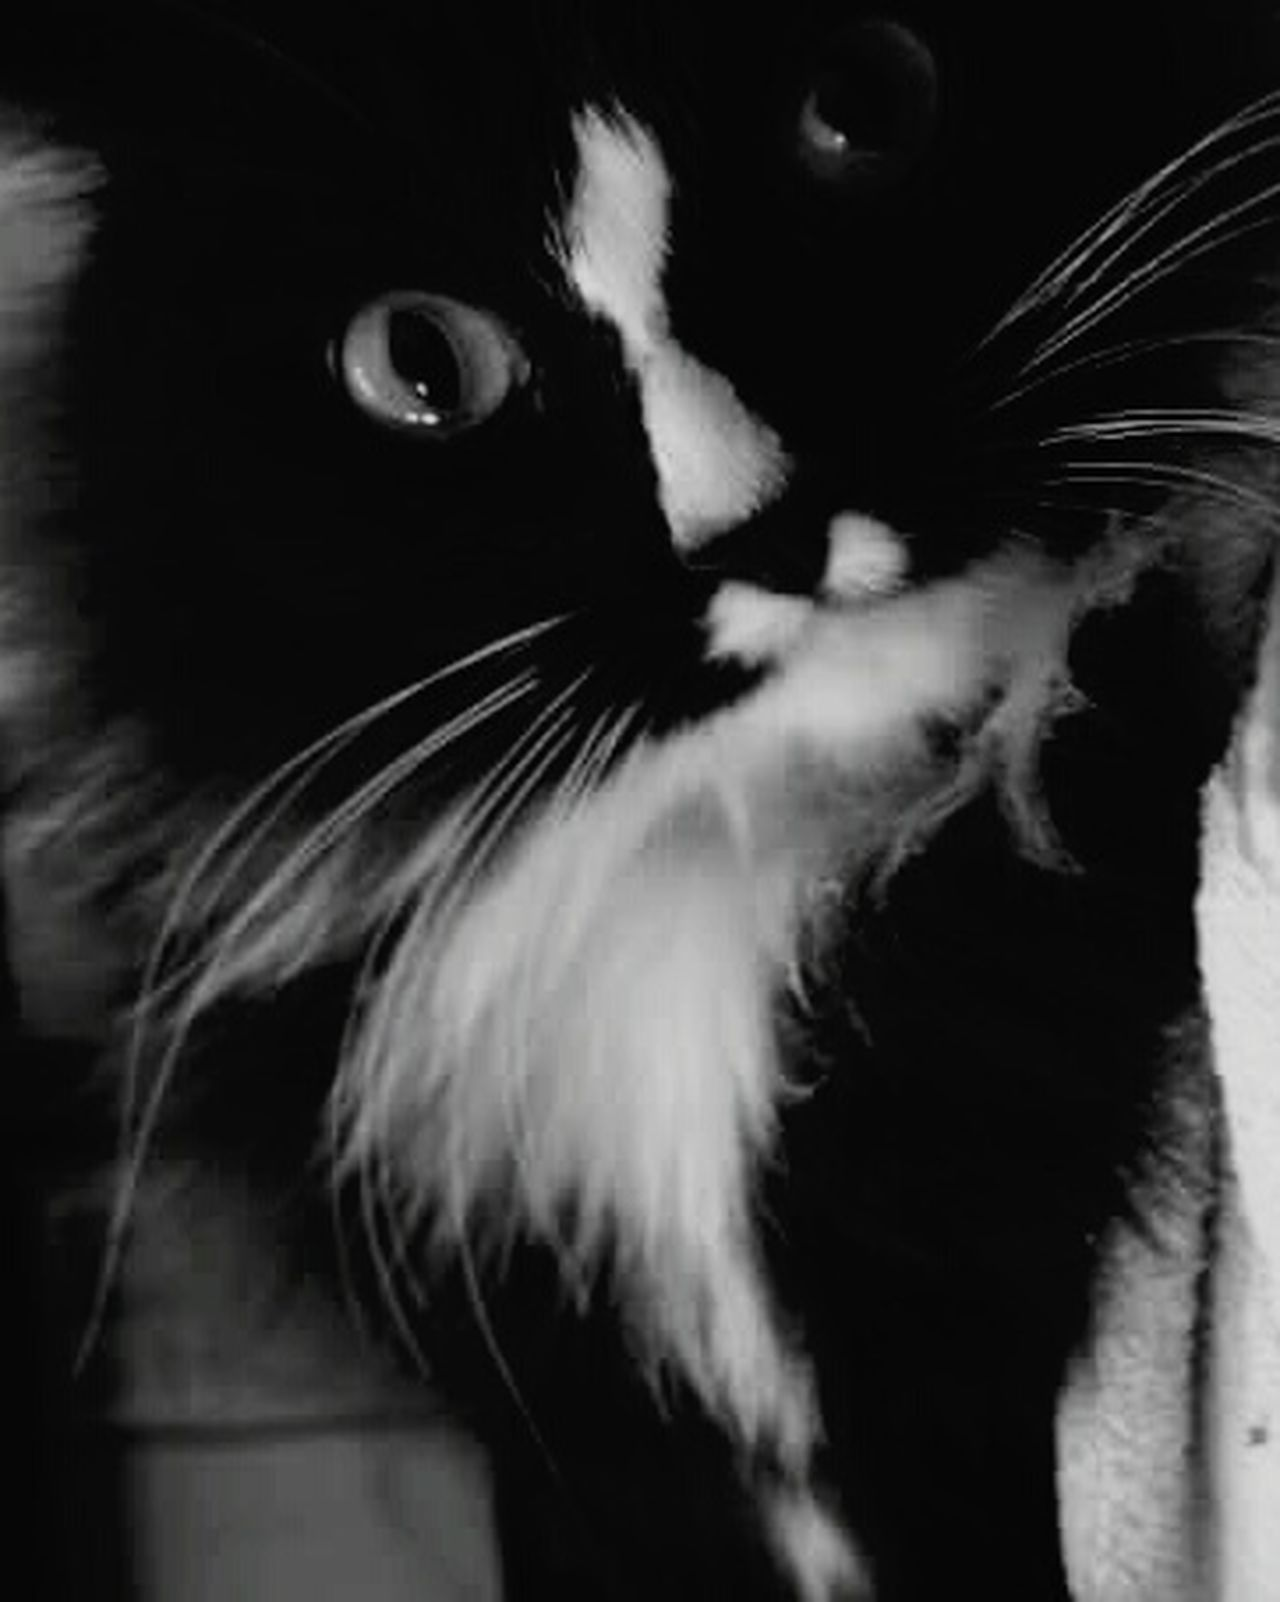 Animal Eye Feline Close-up Domestic Cat Pets One Animal Life Love Cat Cats Furry Purr Kitty Blackandwhite Blackandwhitecat Blackandwhitecat Tuxedo